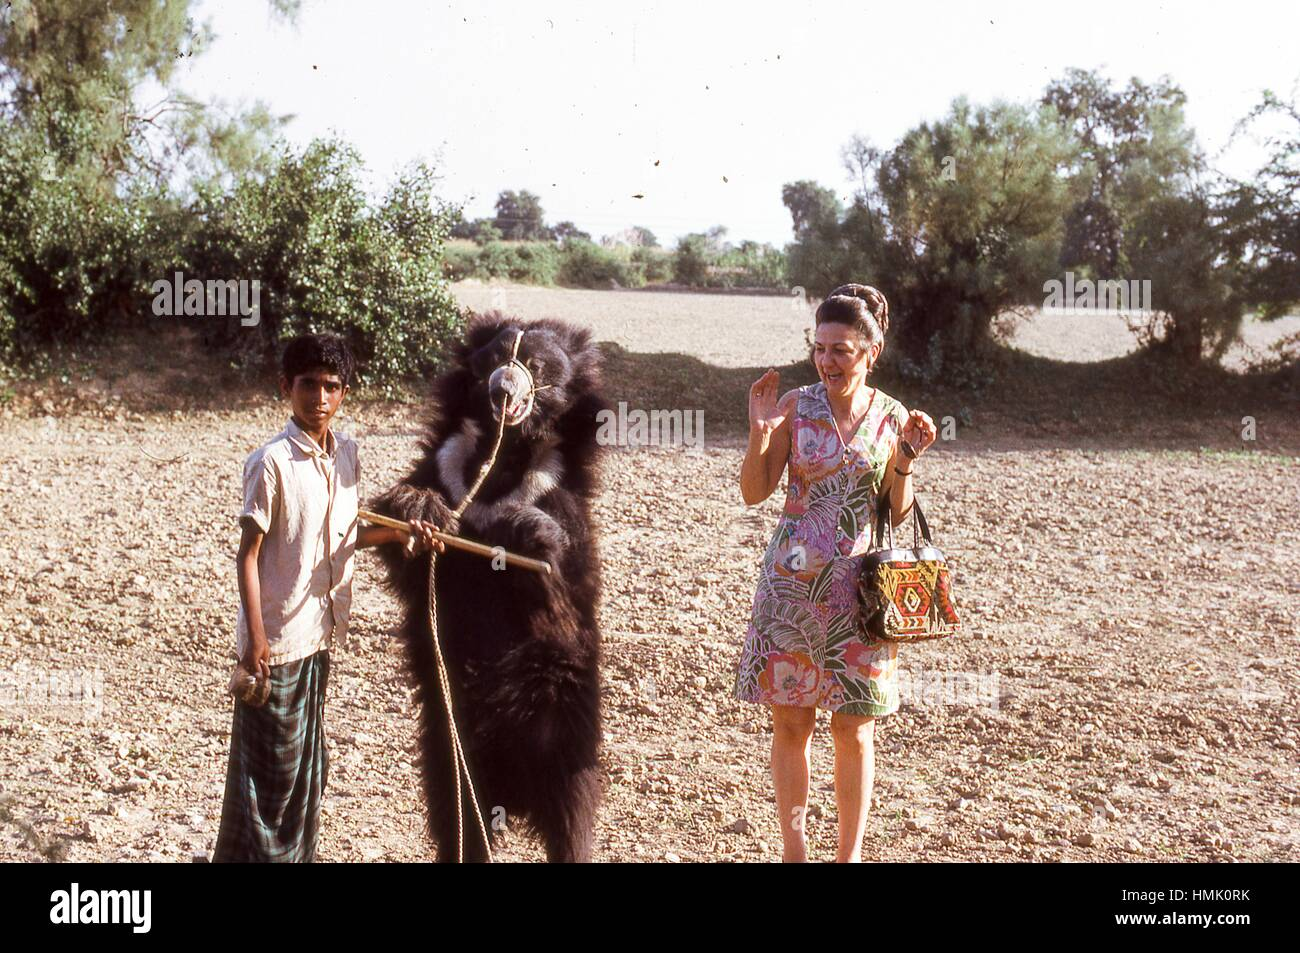 Scene of a Western woman hesitantly posing with a young Indian boy and his muzzled, leashed black bear outside the - Stock Image